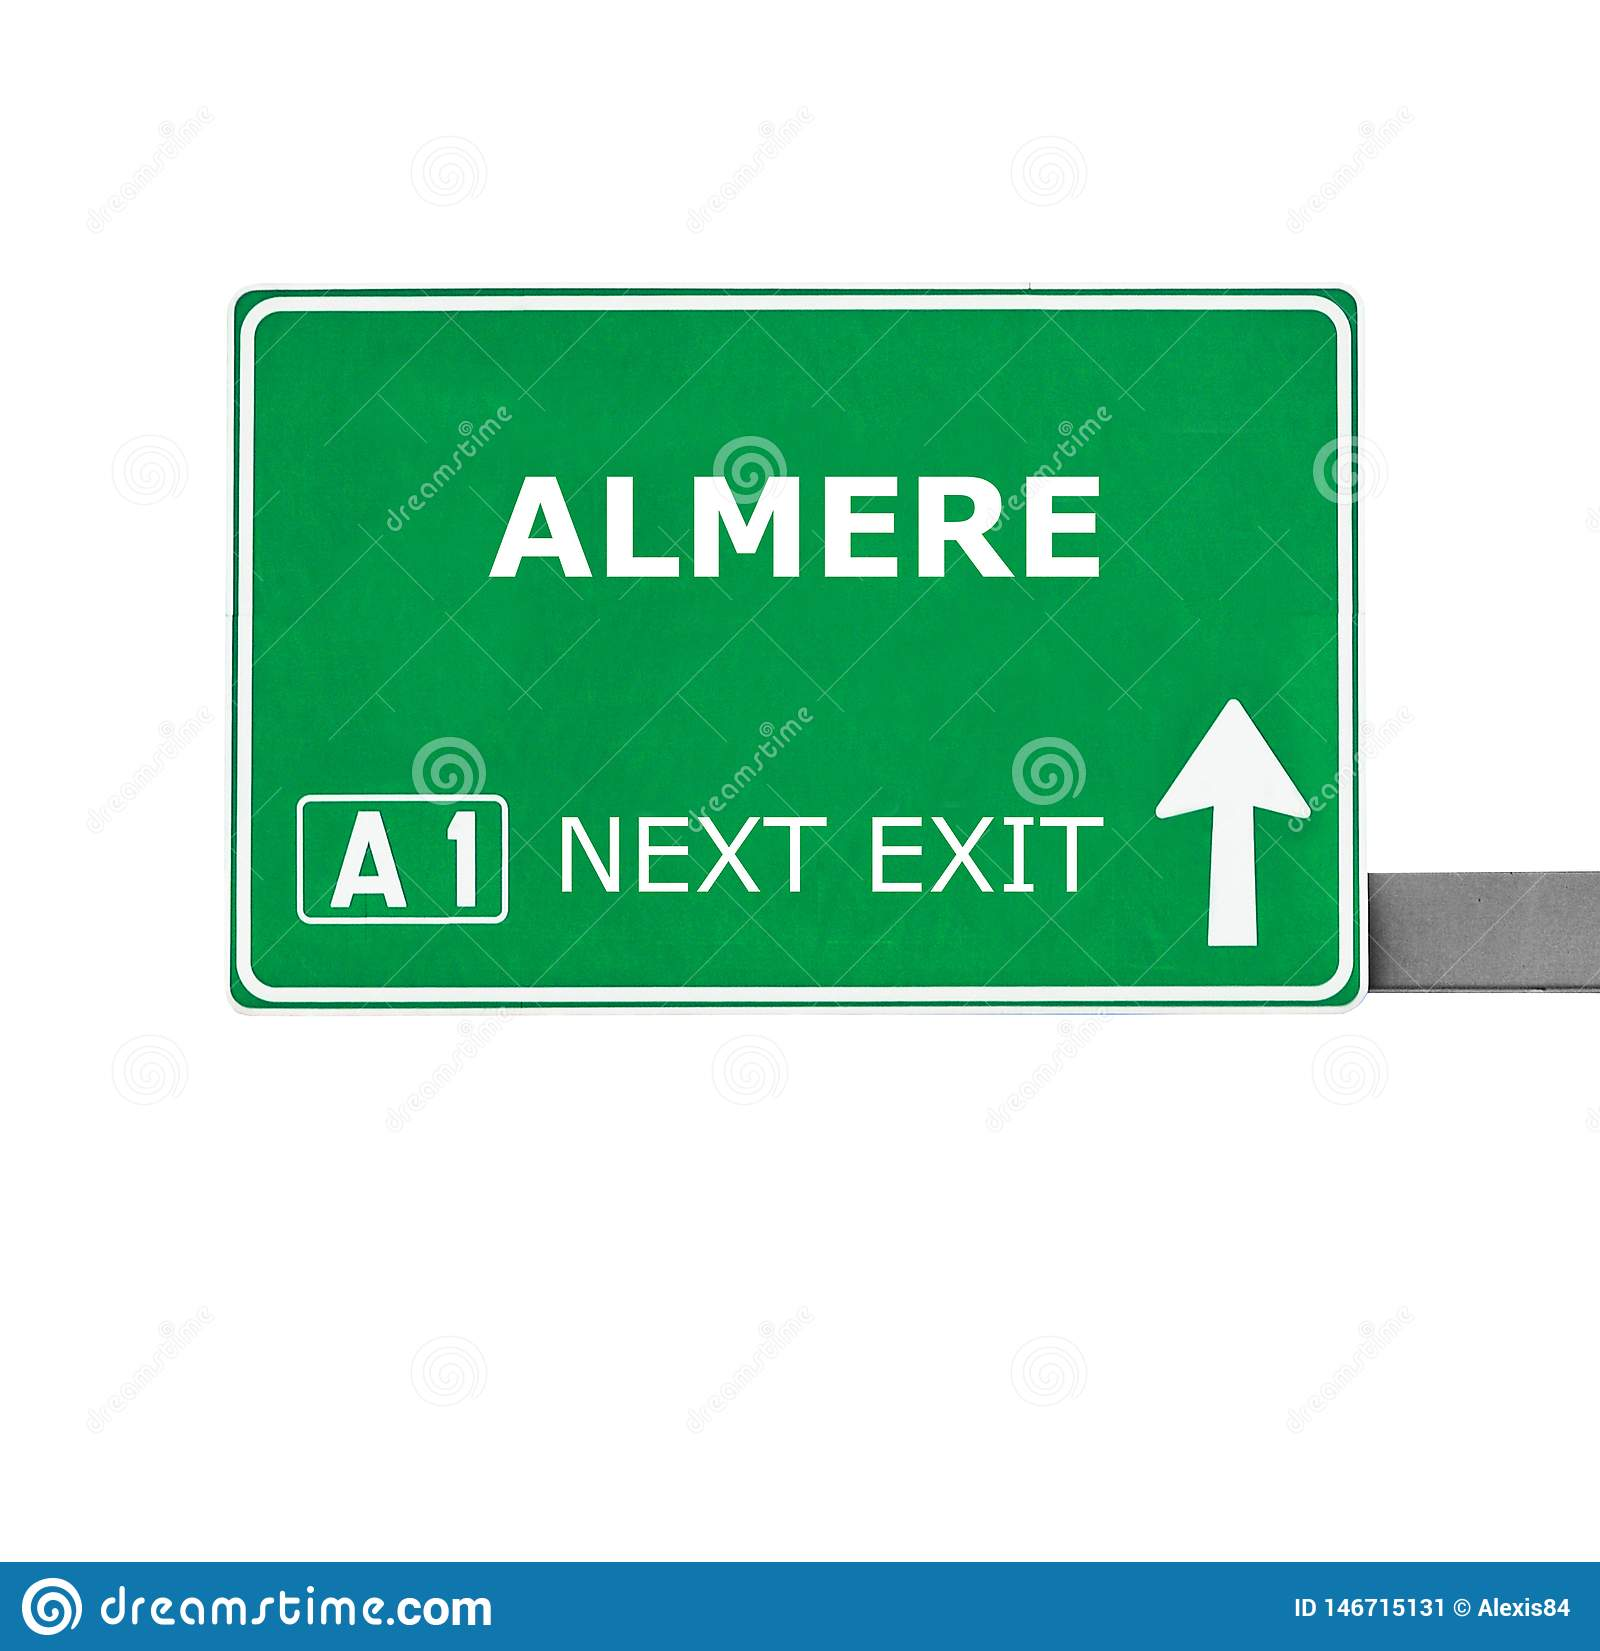 ALMERE road sign isolated on white